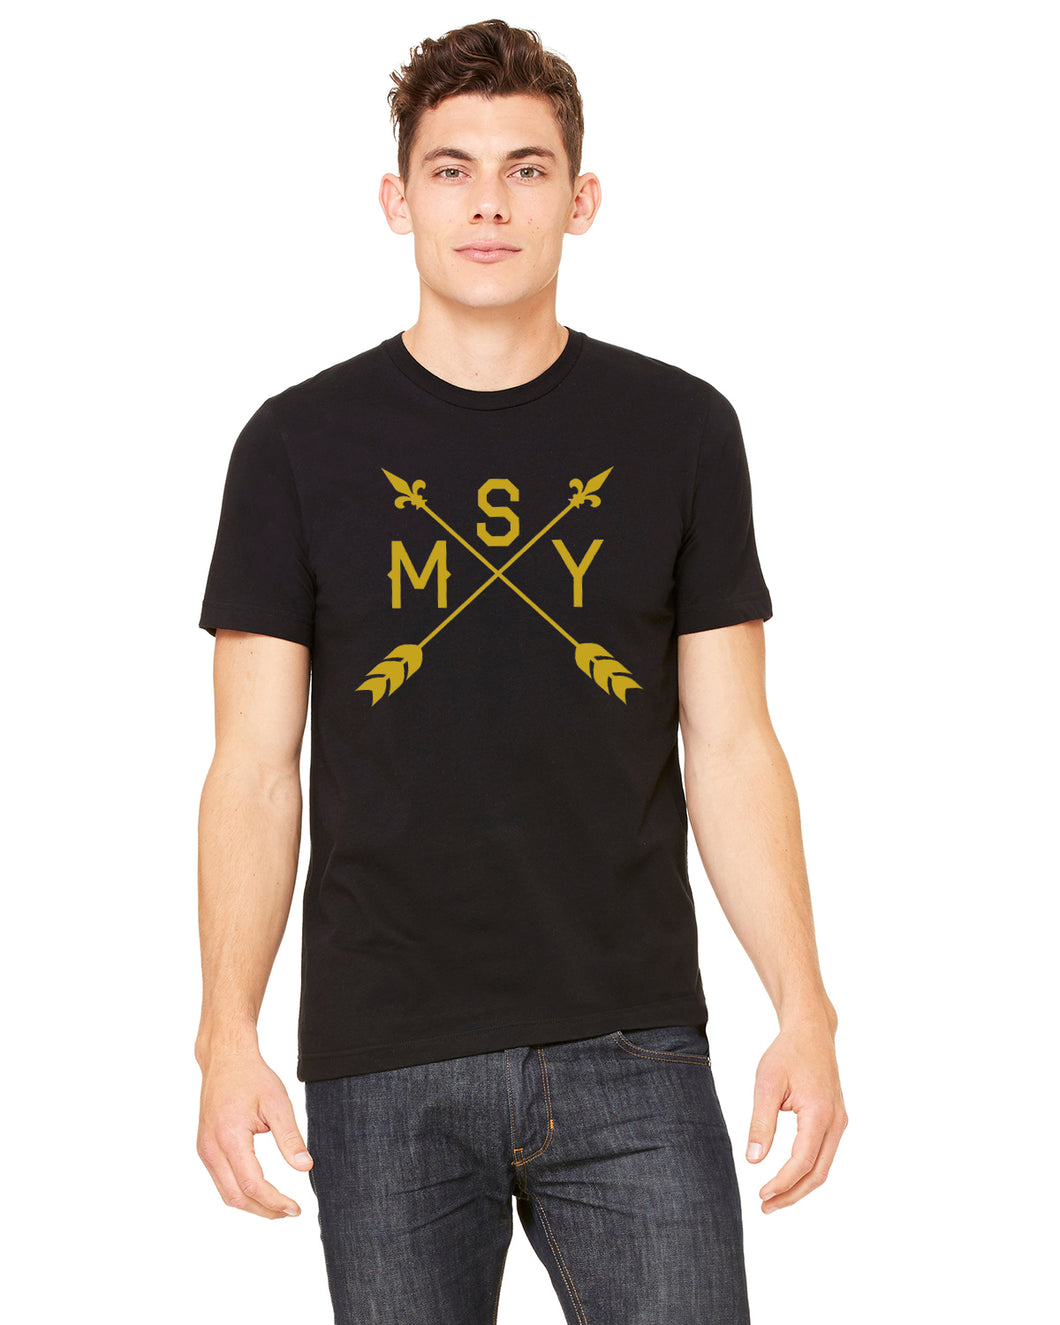 Point Me in the Direction of New Orleans, MSY Airport Code, Mens Shirt